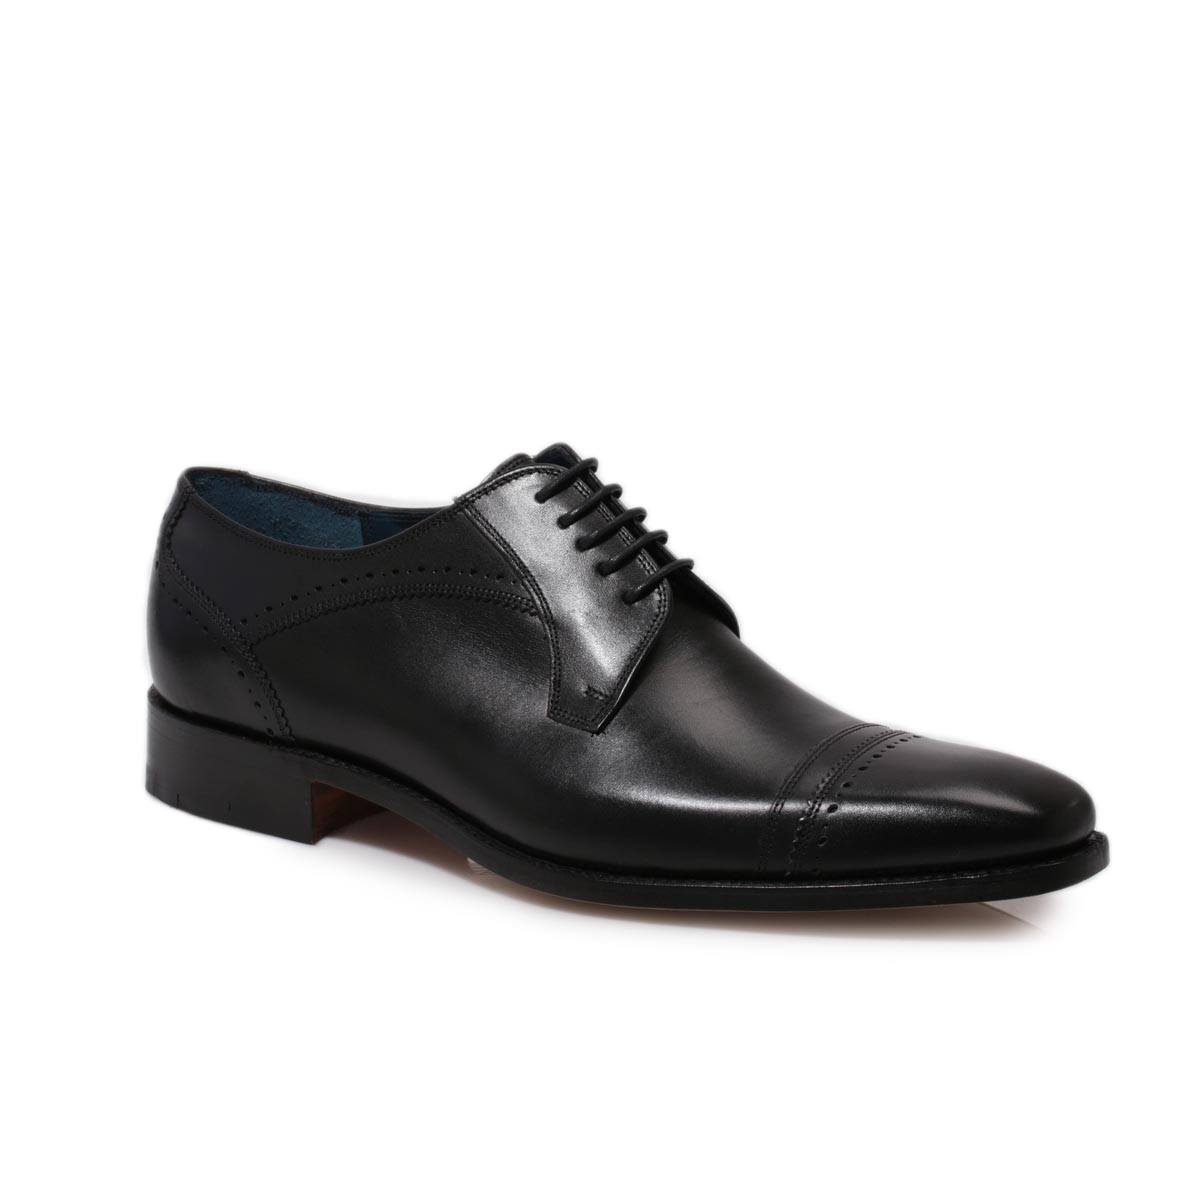 barker oxford black leather smart lace up mens